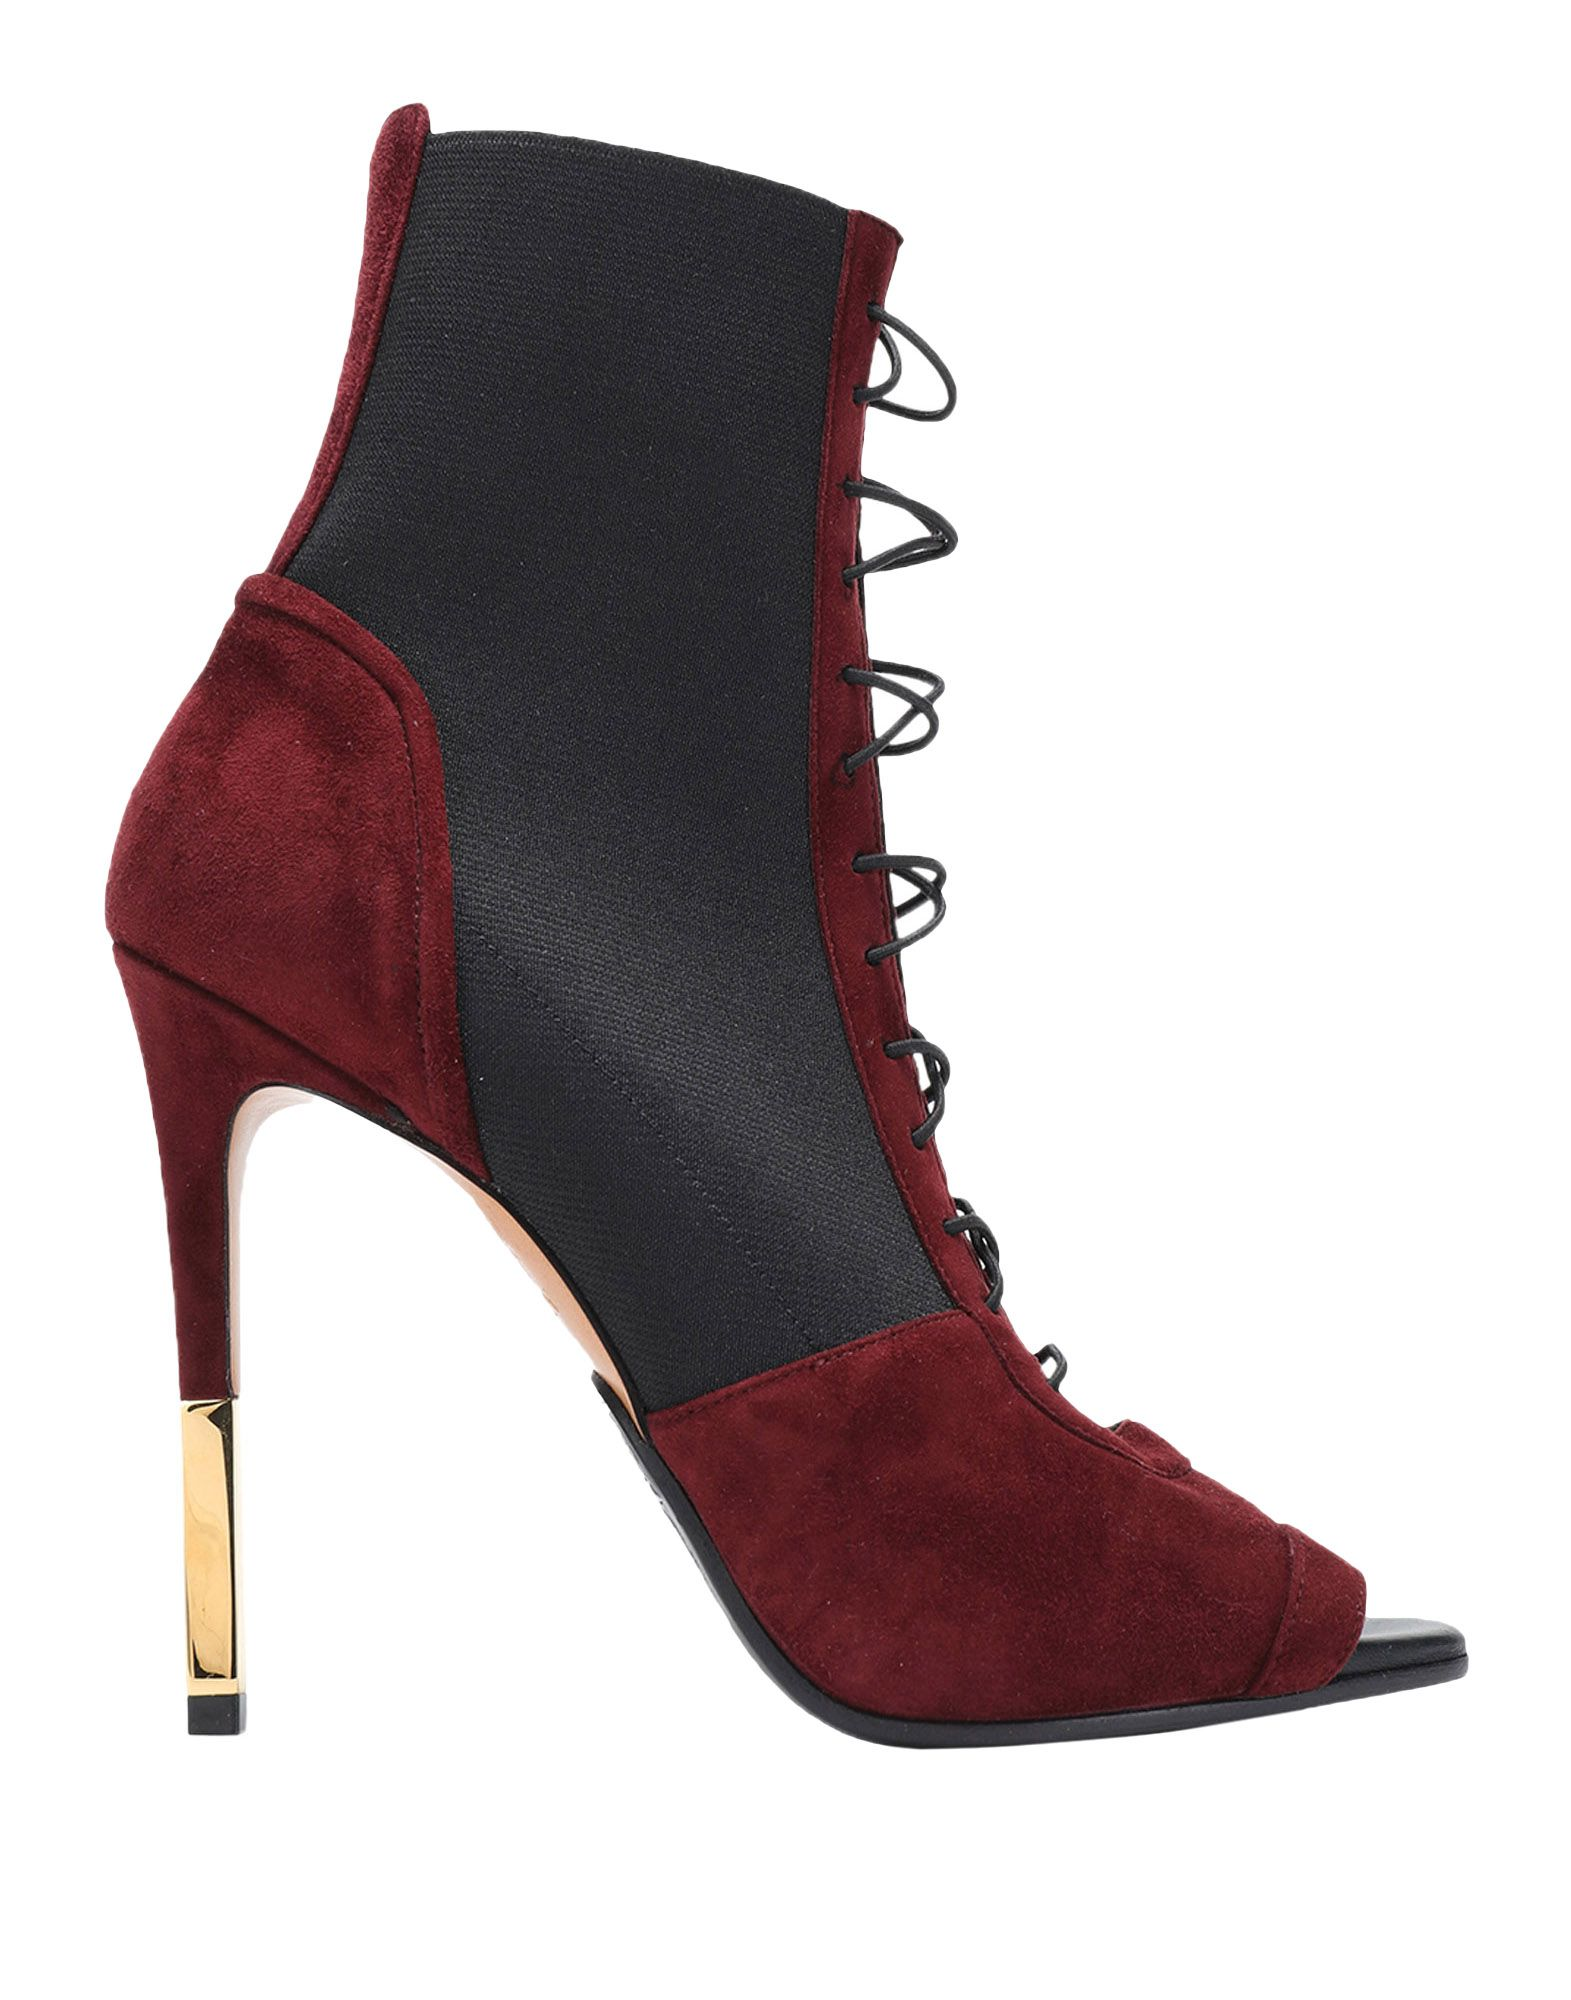 Balmain Ankle Boot - Women Balmain Ankle online Boots online Ankle on  United Kingdom - 11551292HE 8373d5